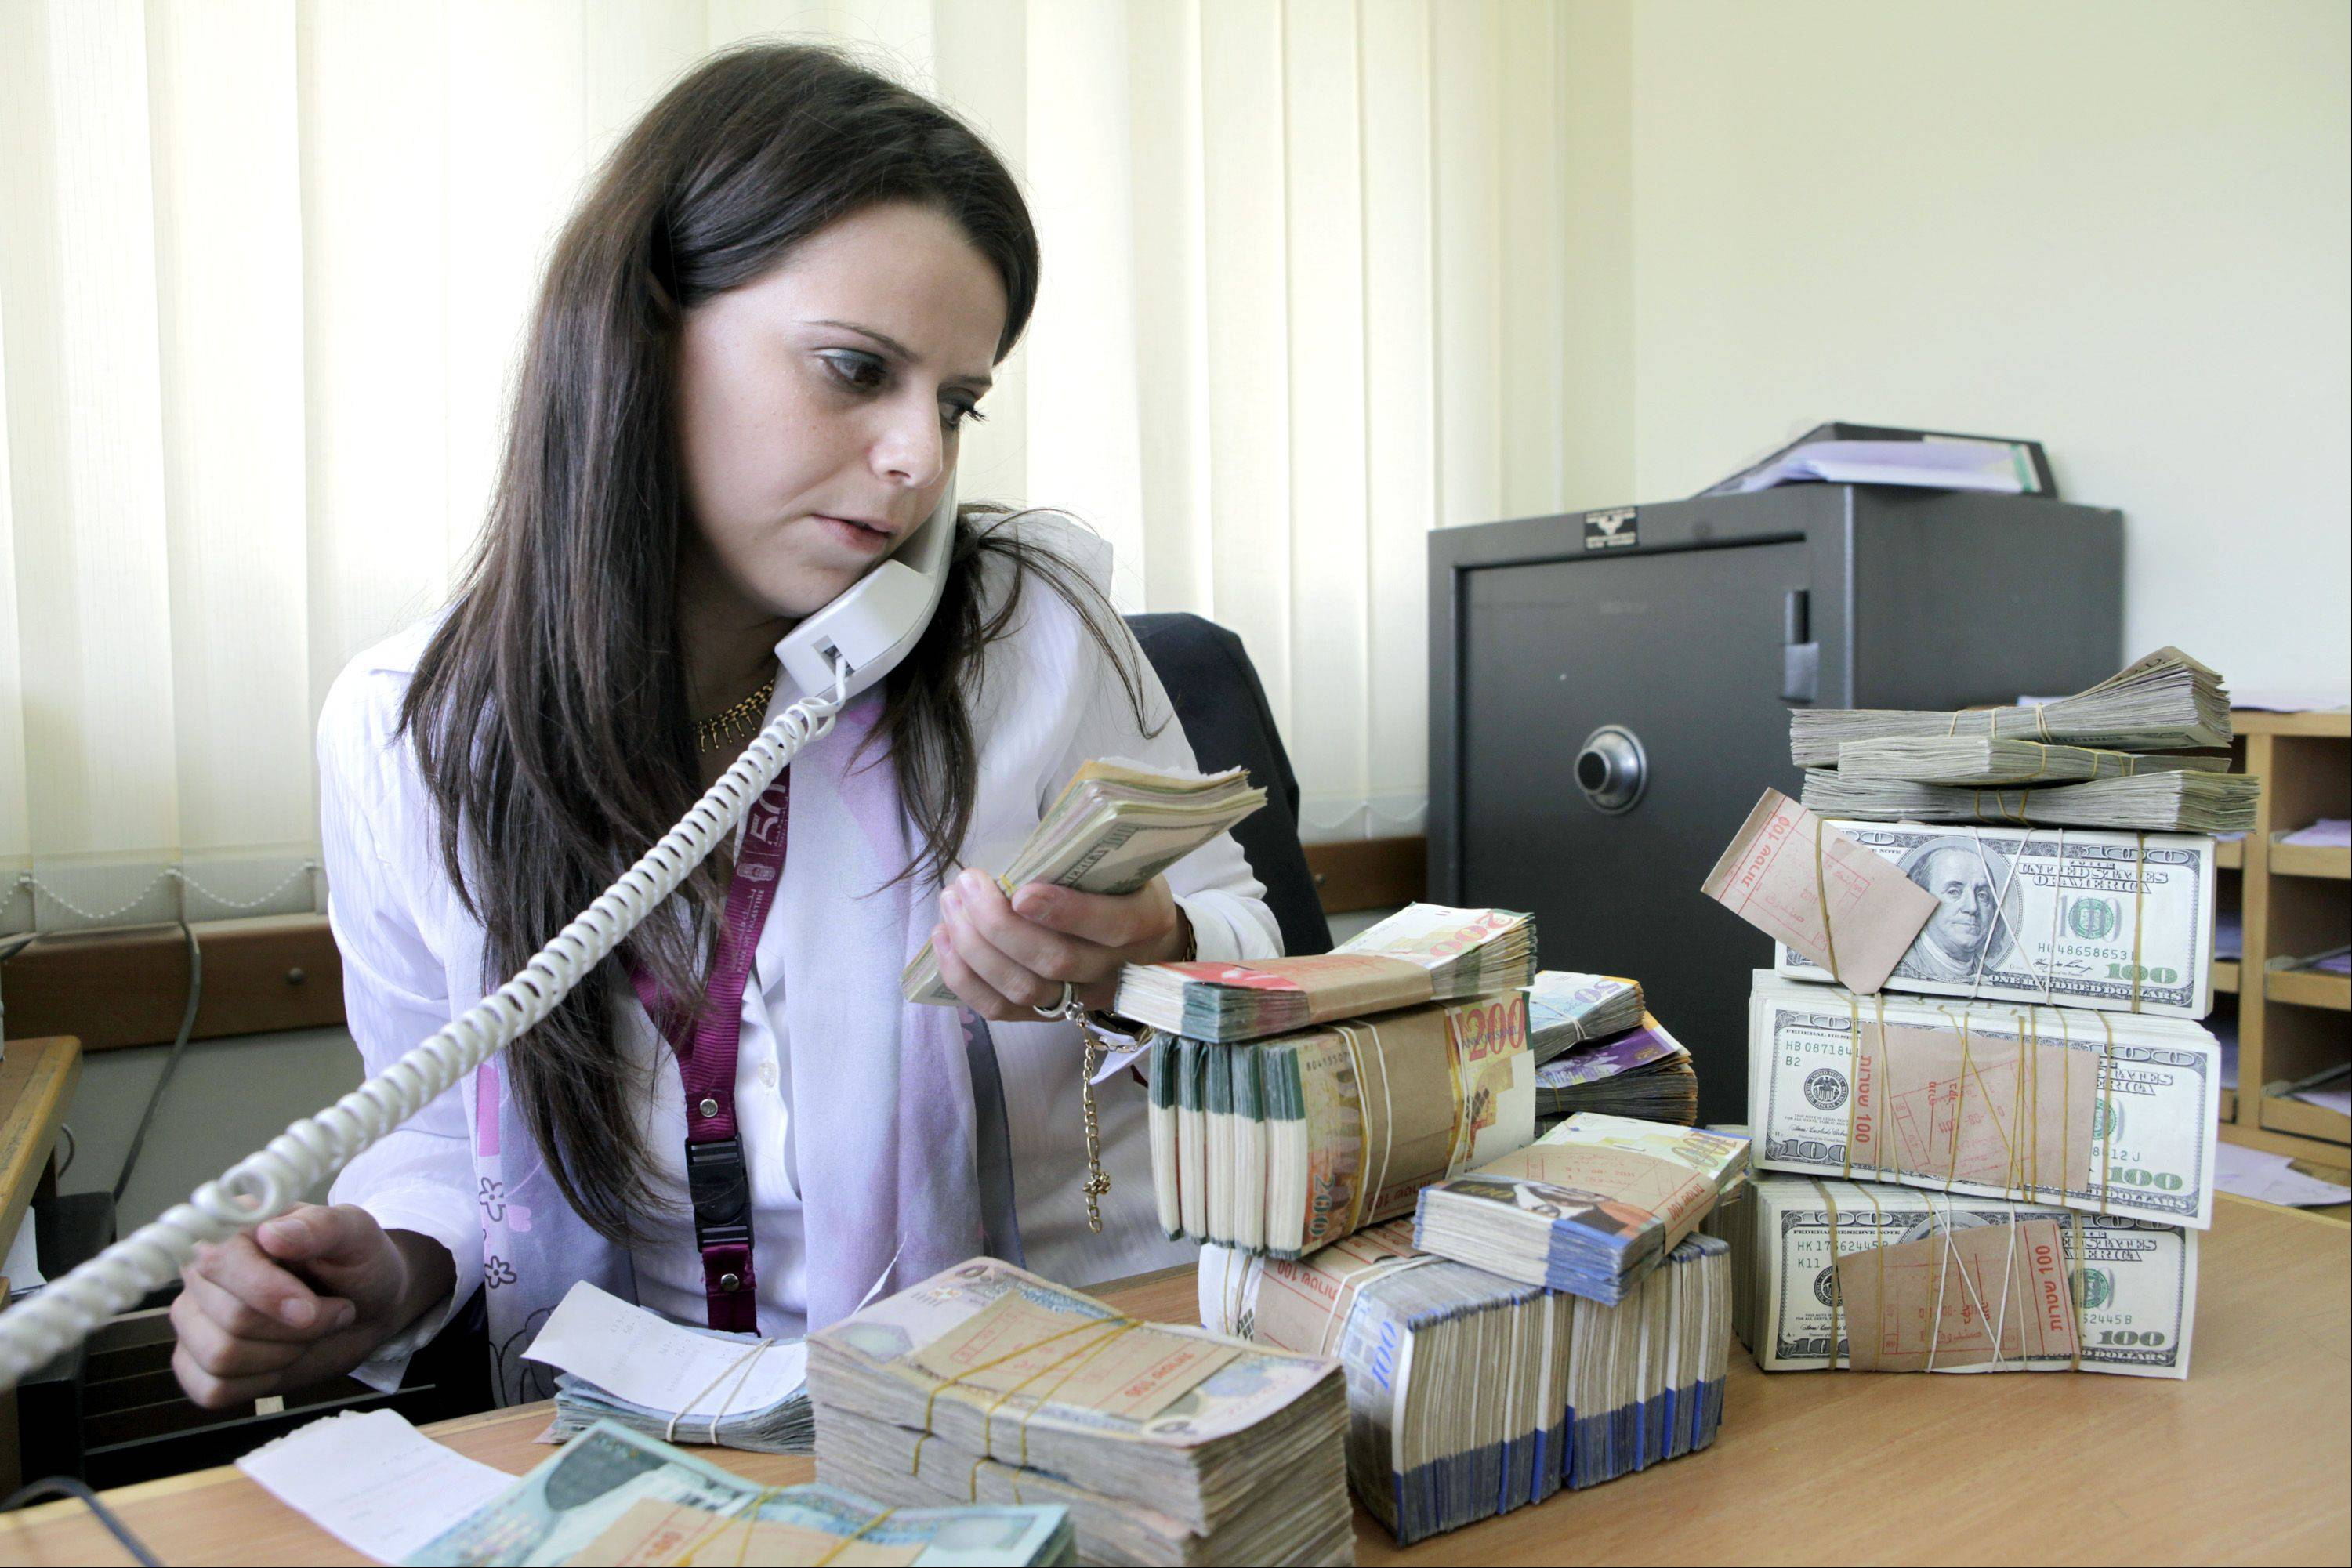 Reem Qaraqe, a teller at the Bank of Palestine Plc, counts U.S. dollars at her desk in a branch of the bank in Bethlehem, West Bank. By winning the confidence of her customers, Qaraq is helping to fulfill the vision of the Bank of Palestine�s 35-year-old CEO, Hashim Shawa.